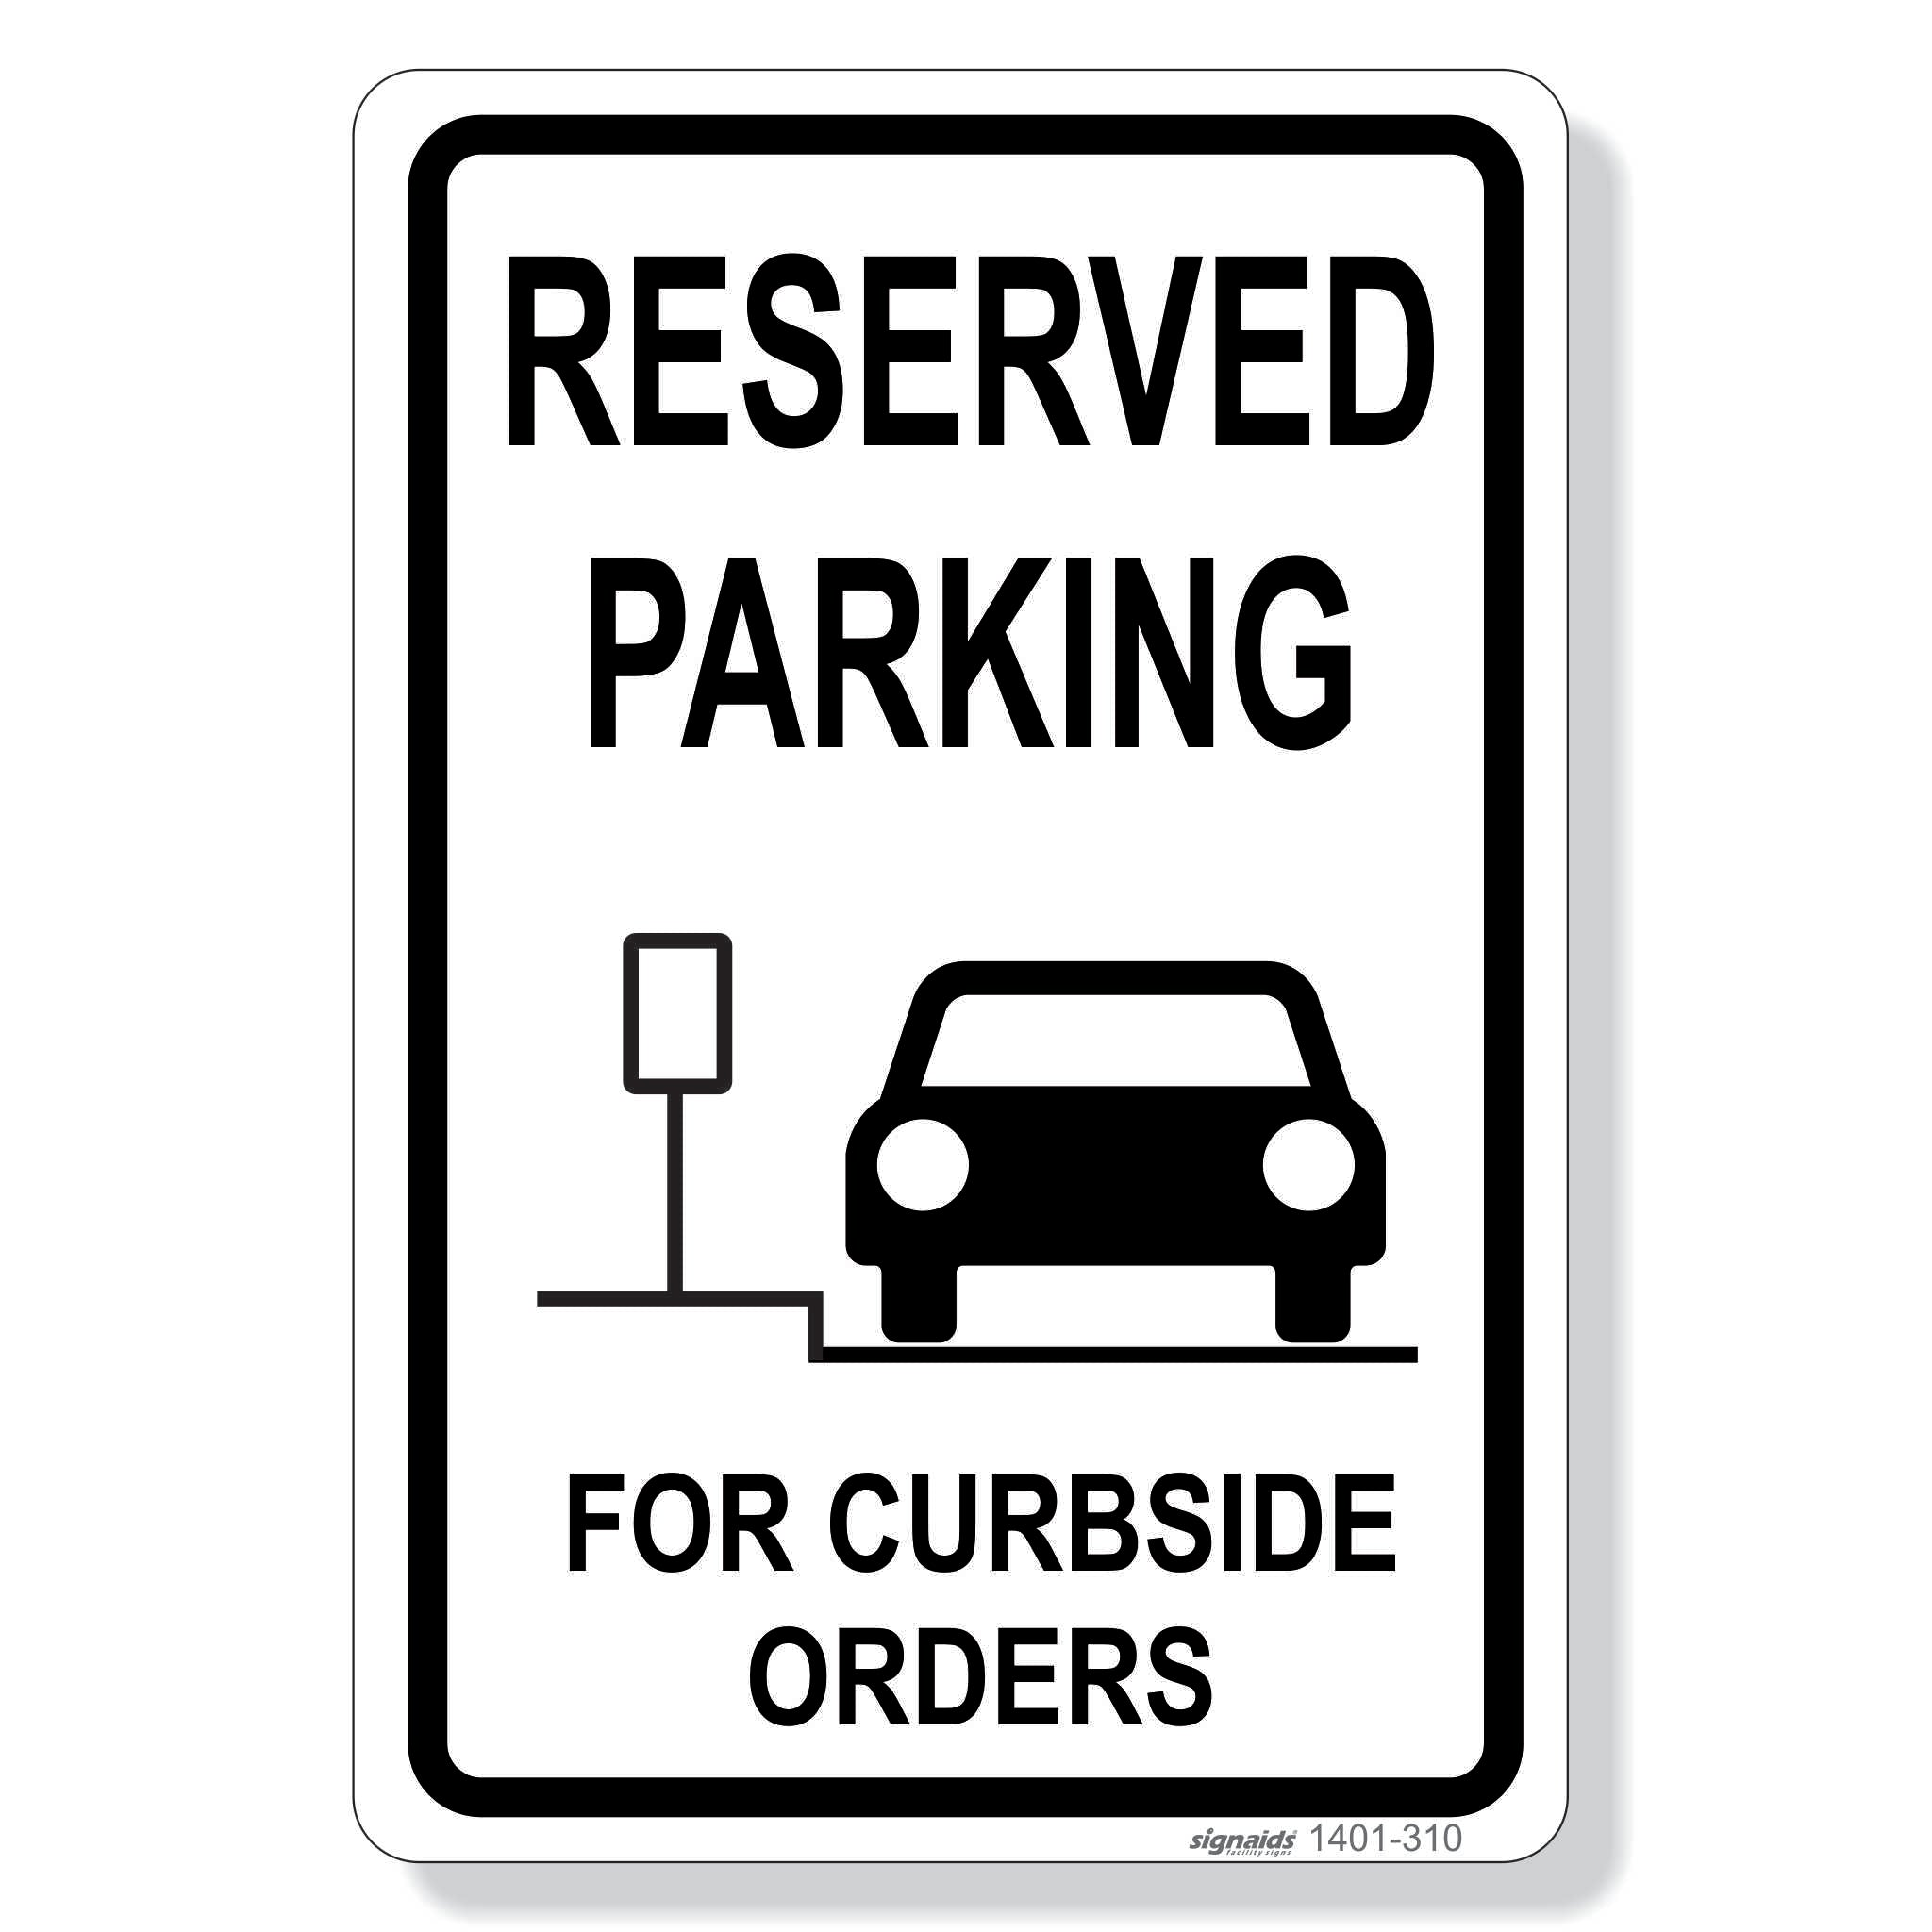 Parking Sign - Reserved Parking For Curbside Orders